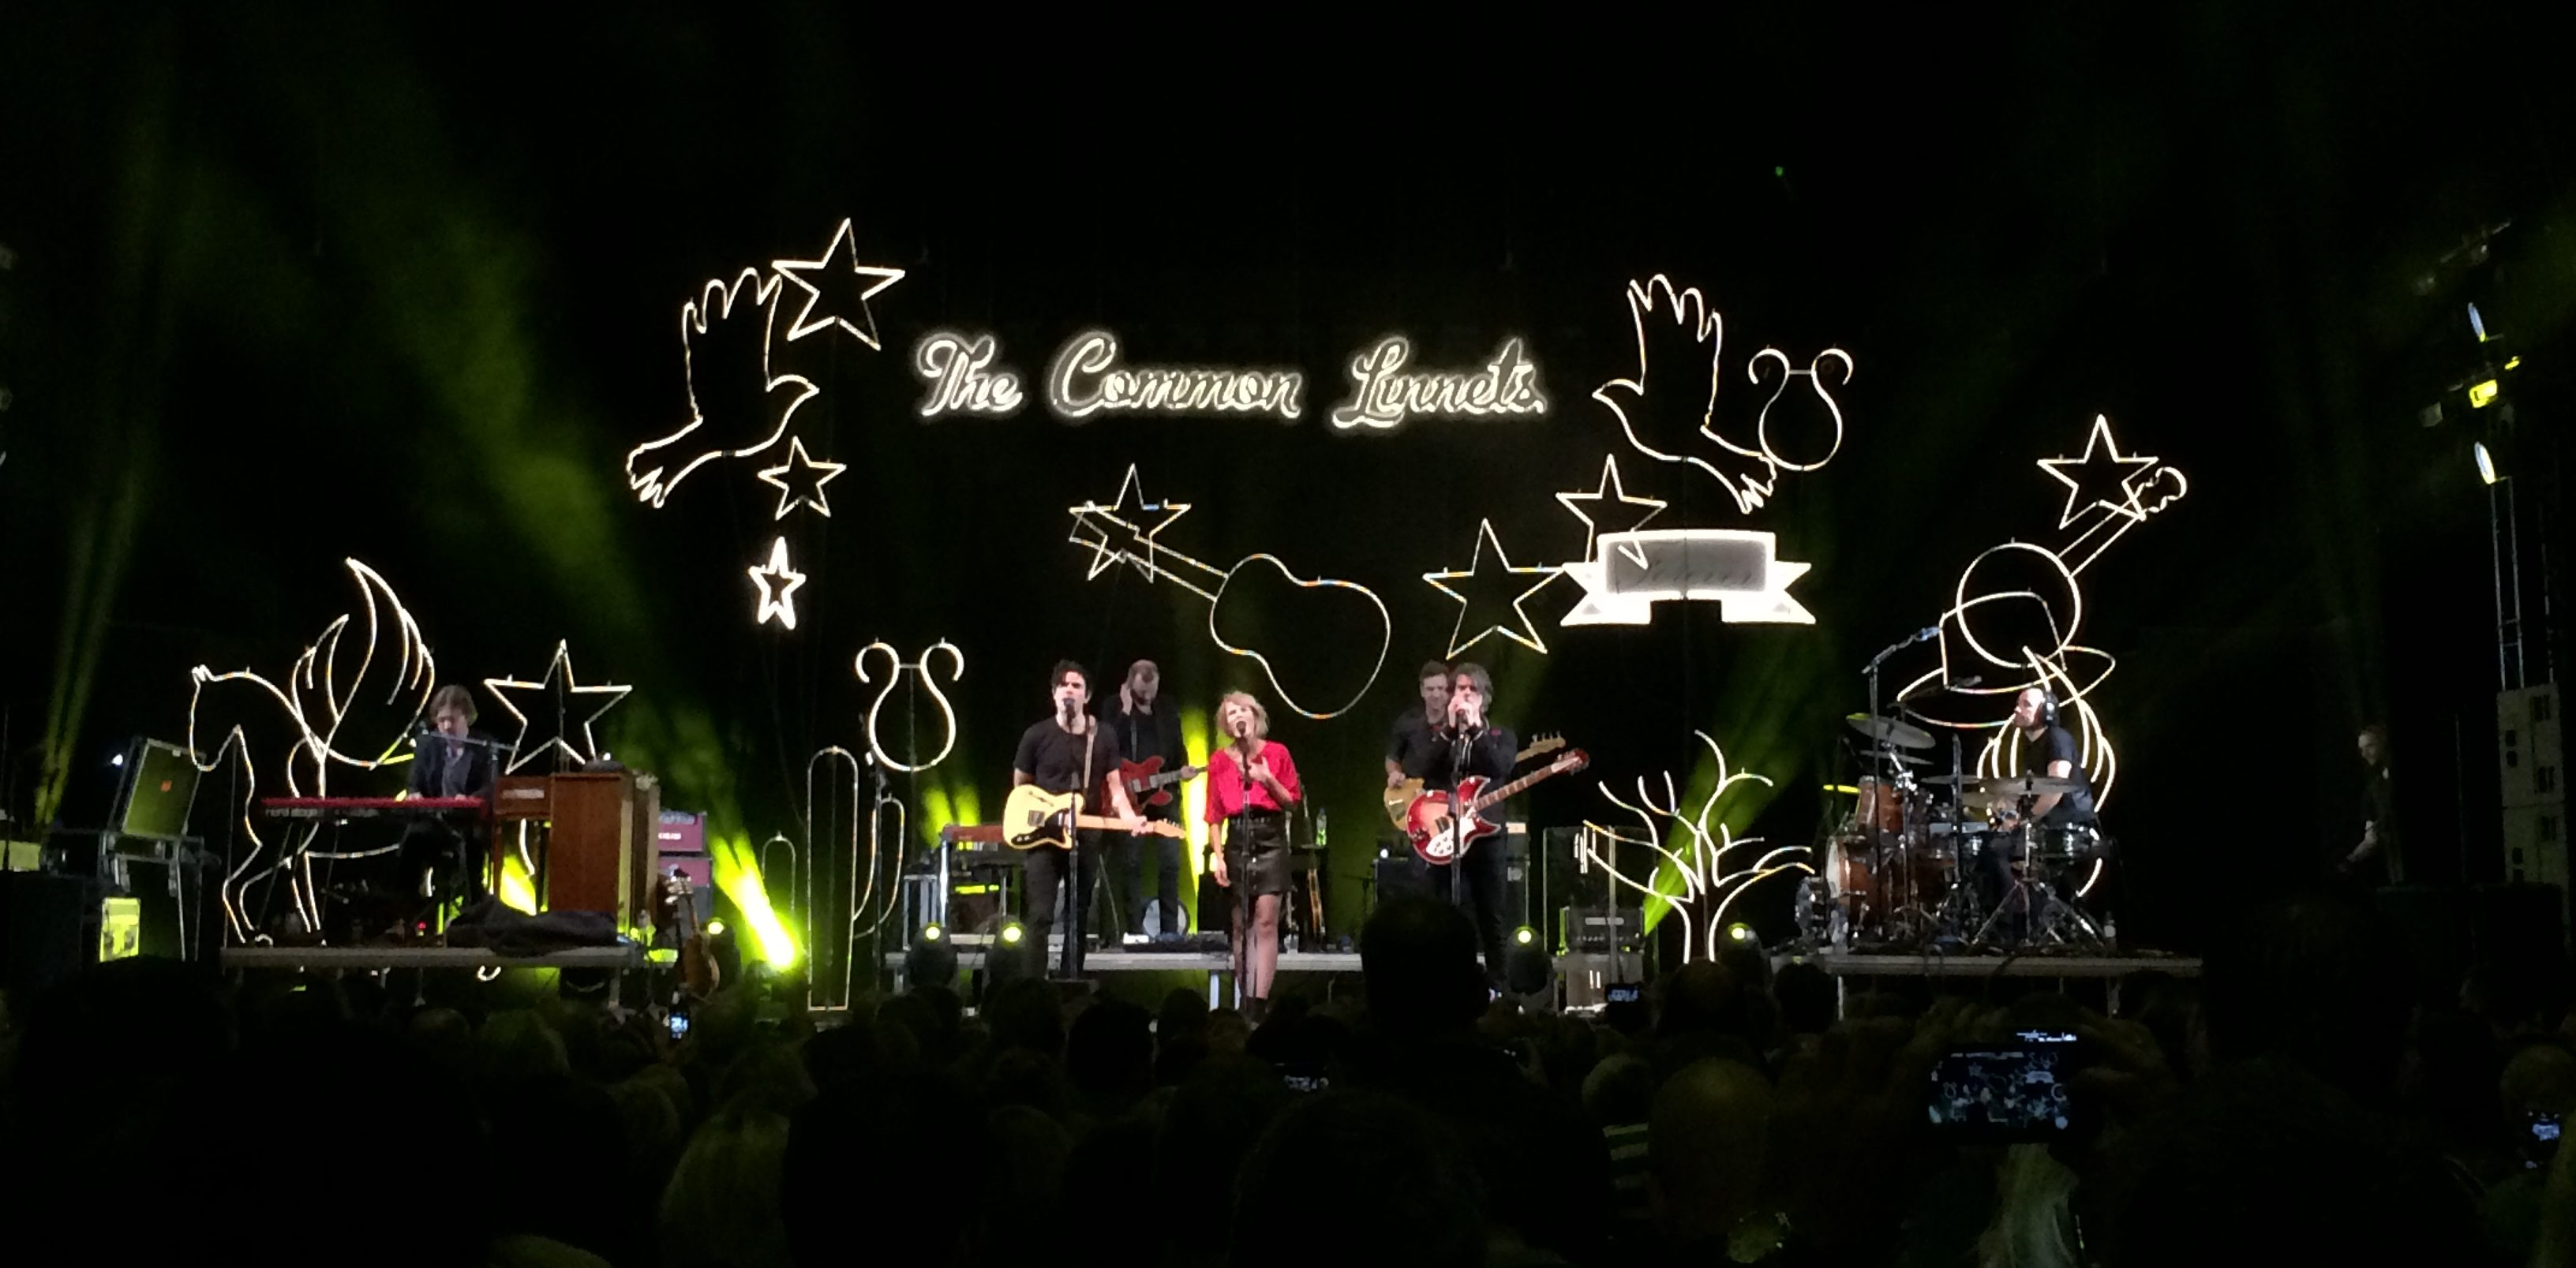 Concertreview: The Common Linnets 'Hallooo Enschede'